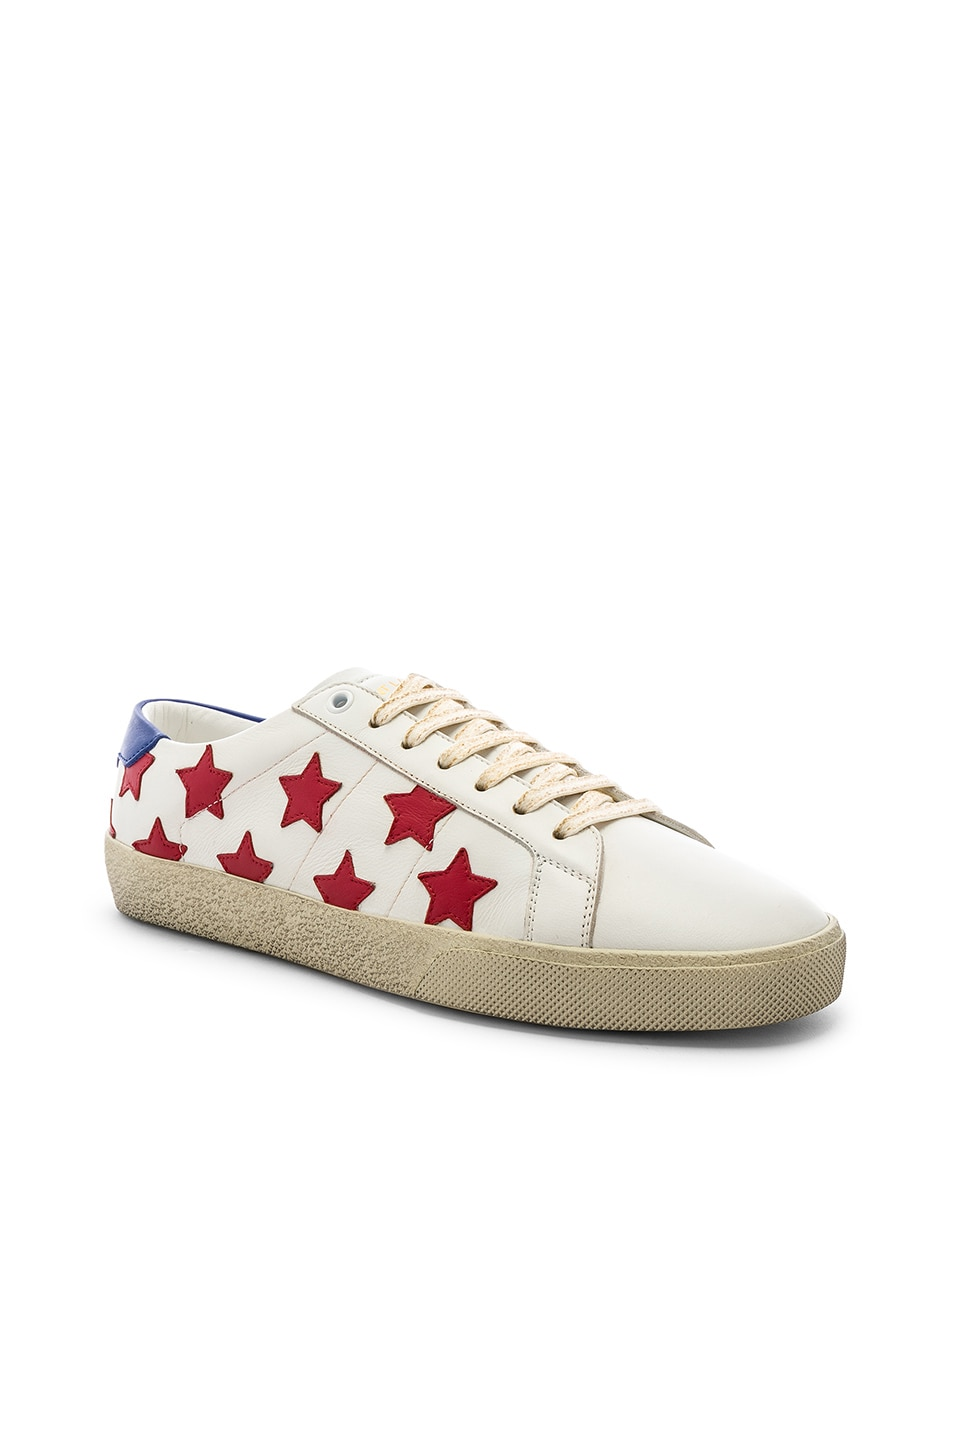 fc57f32aa6e Image 1 of Saint Laurent Court Classic SL/06 California Star Sneakers in  White &